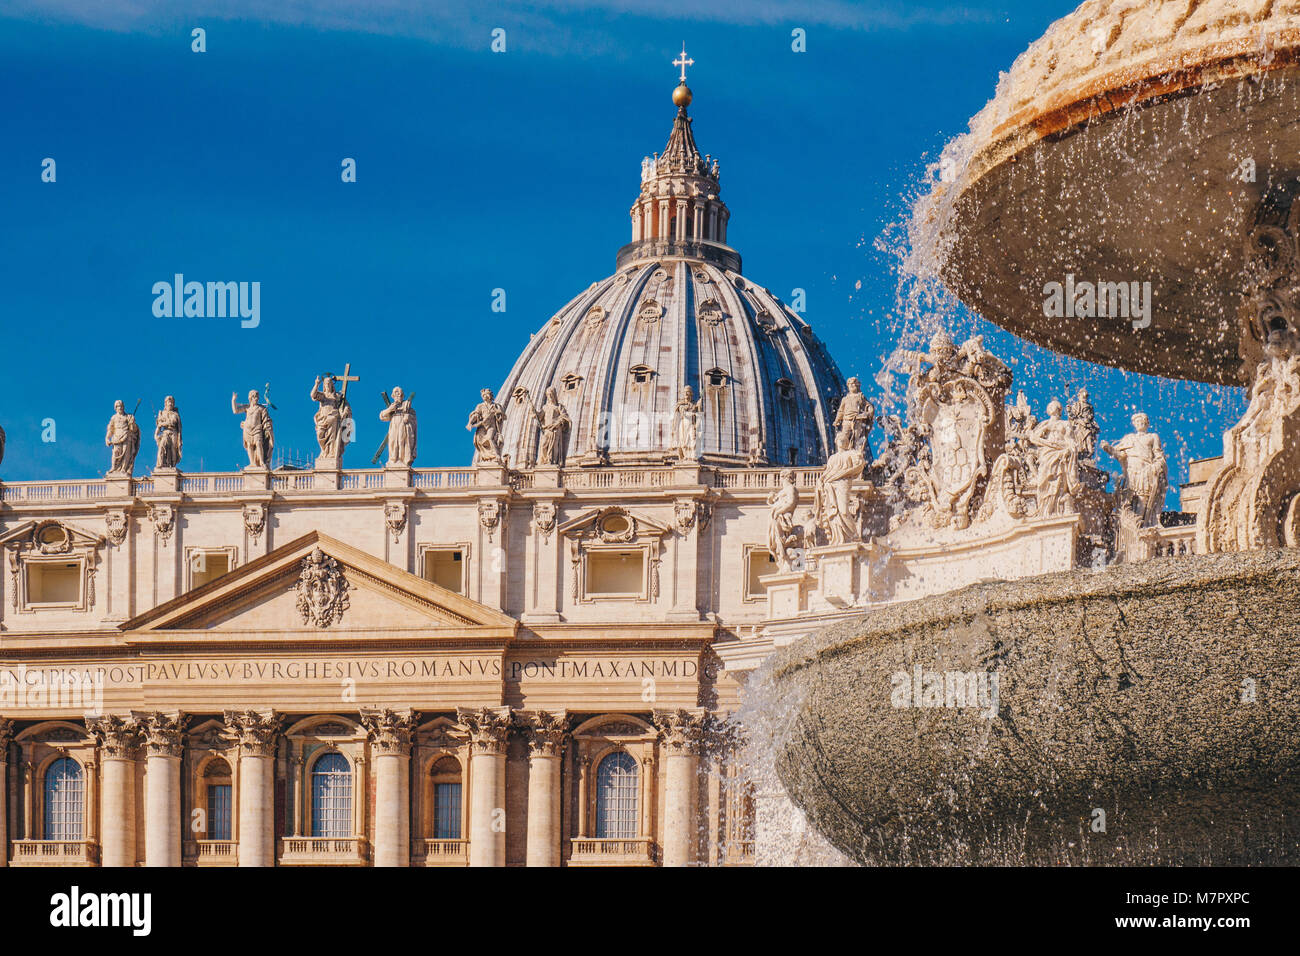 Saint Peter's Basilica  dome and the fountain in front in Vatican City, Rome, Italy. Focus on the dome. - Stock Image